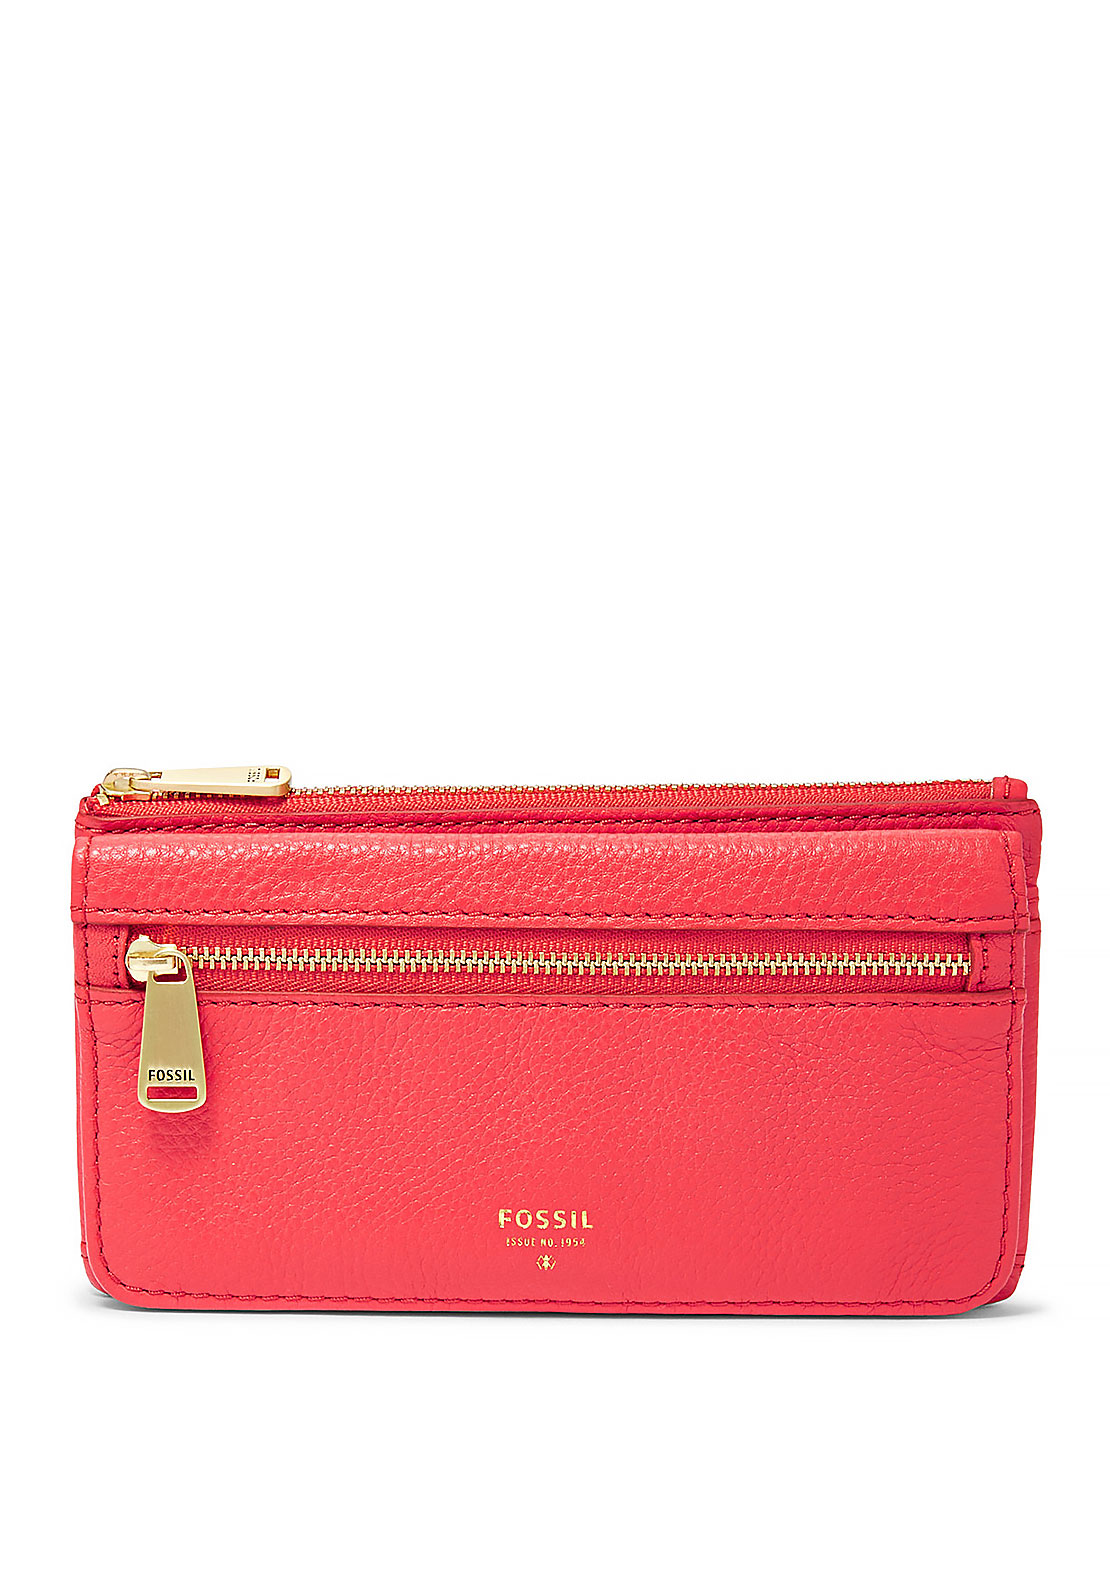 Fossil Preston Leather Flap Wallet, Tomato Red